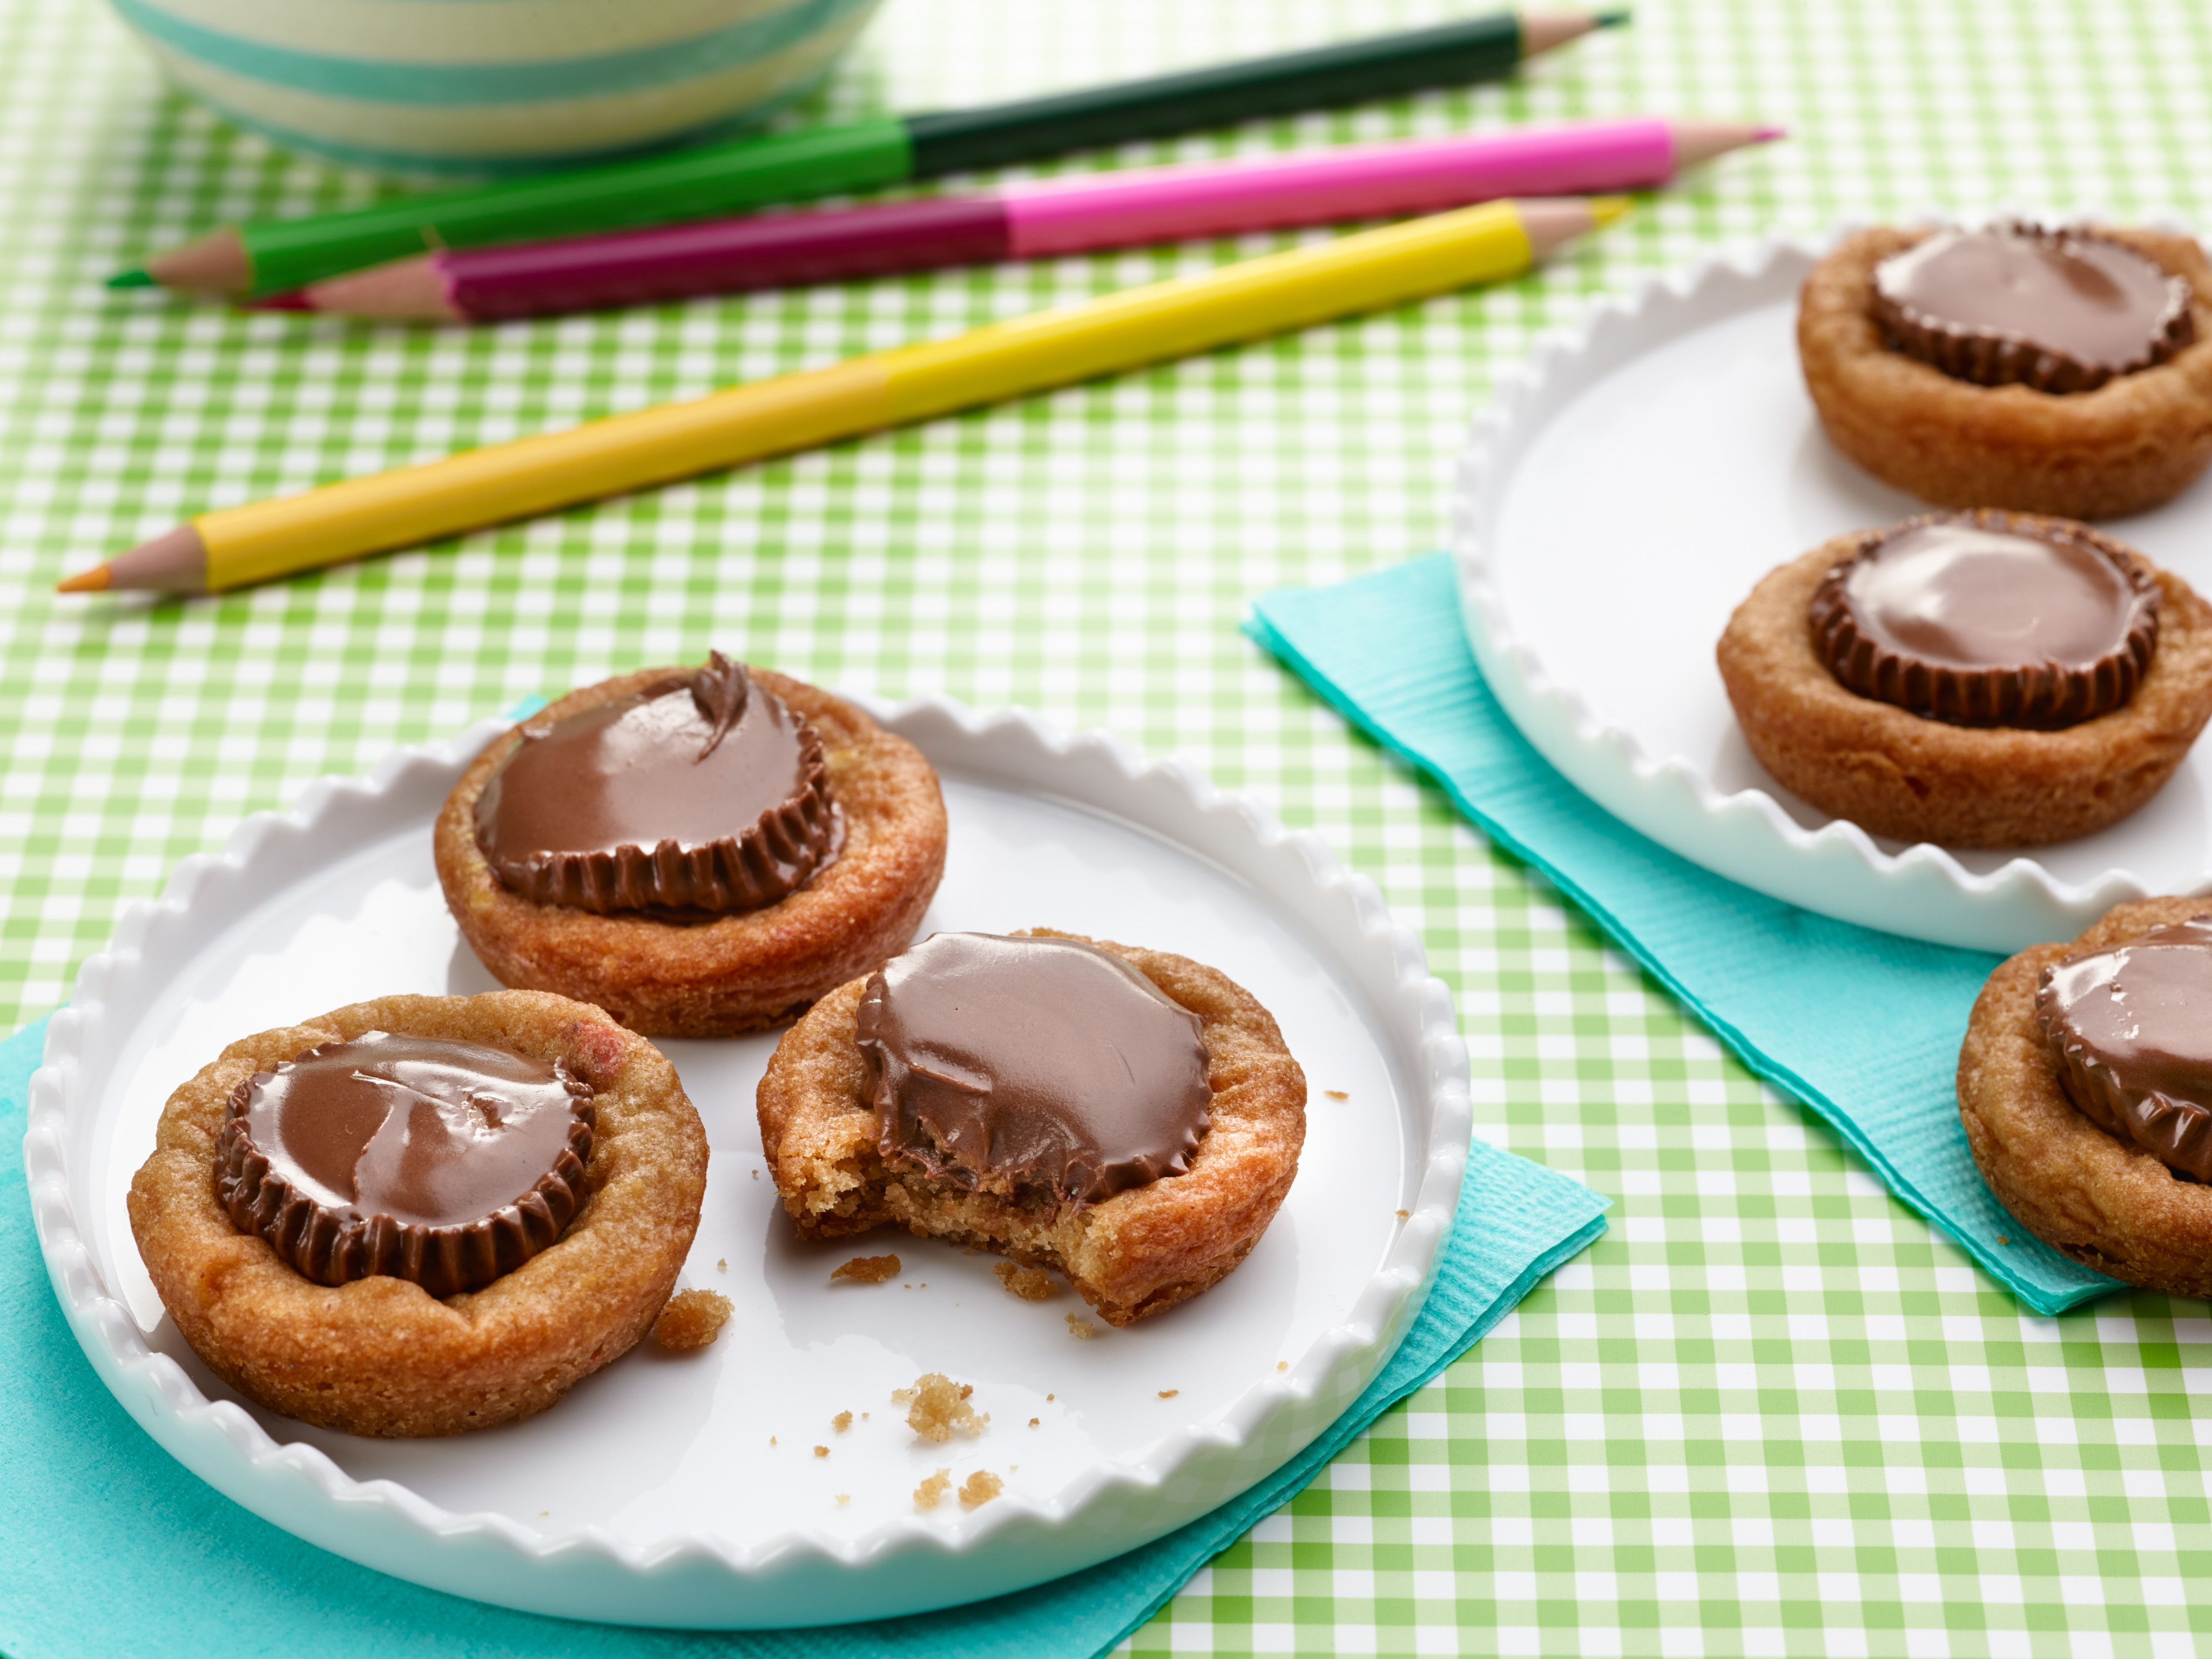 Chocolate peanut butter cup cookies recipe peanut butter cup chocolate peanut butter cup cookies forumfinder Choice Image